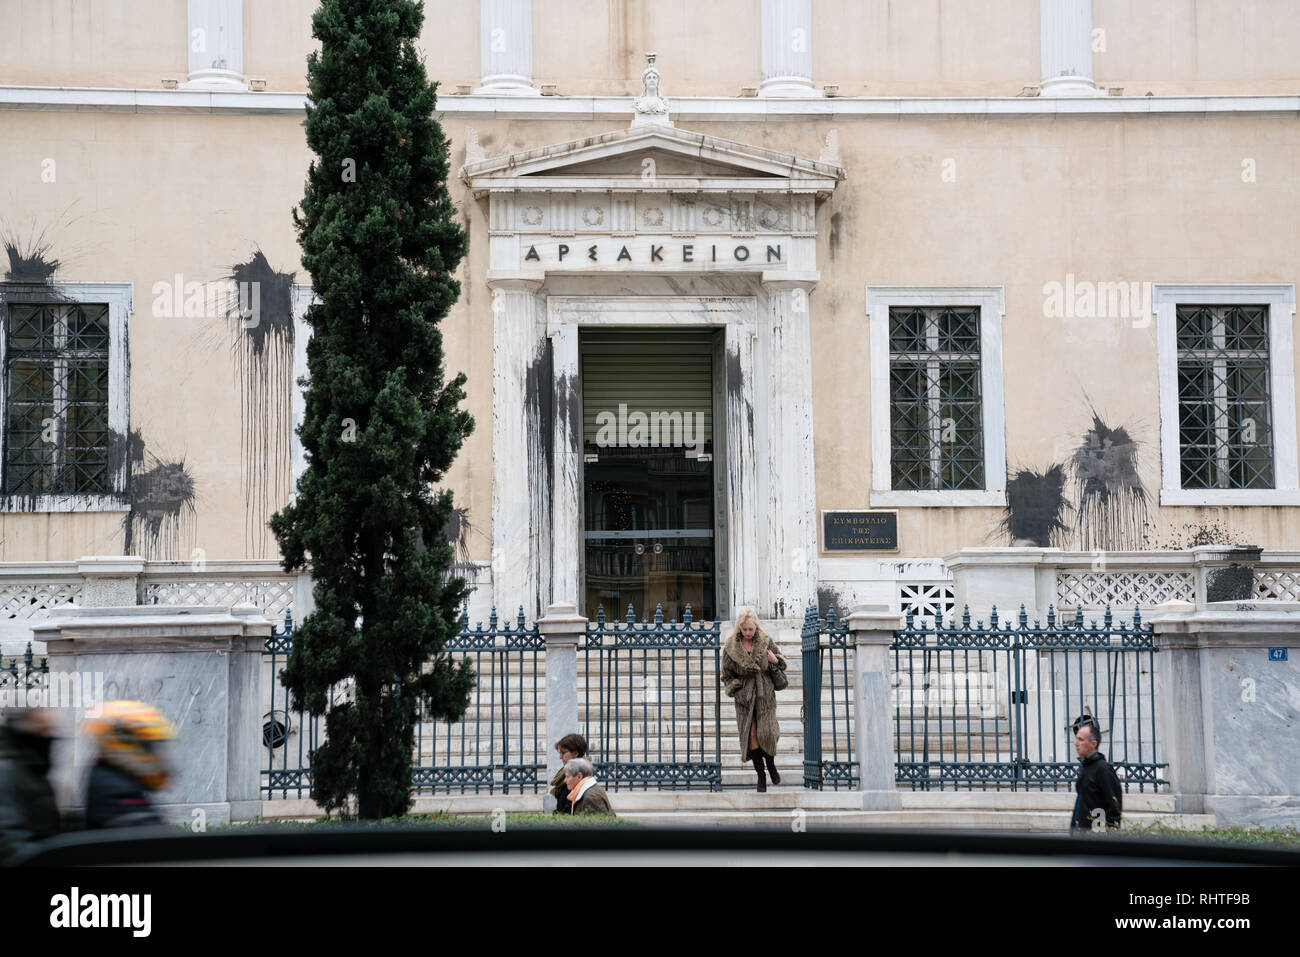 The building of the Arsakeion in Athens, where the Council of State is seated with black paint thrown onto it in protest against further austerity cut - Stock Image